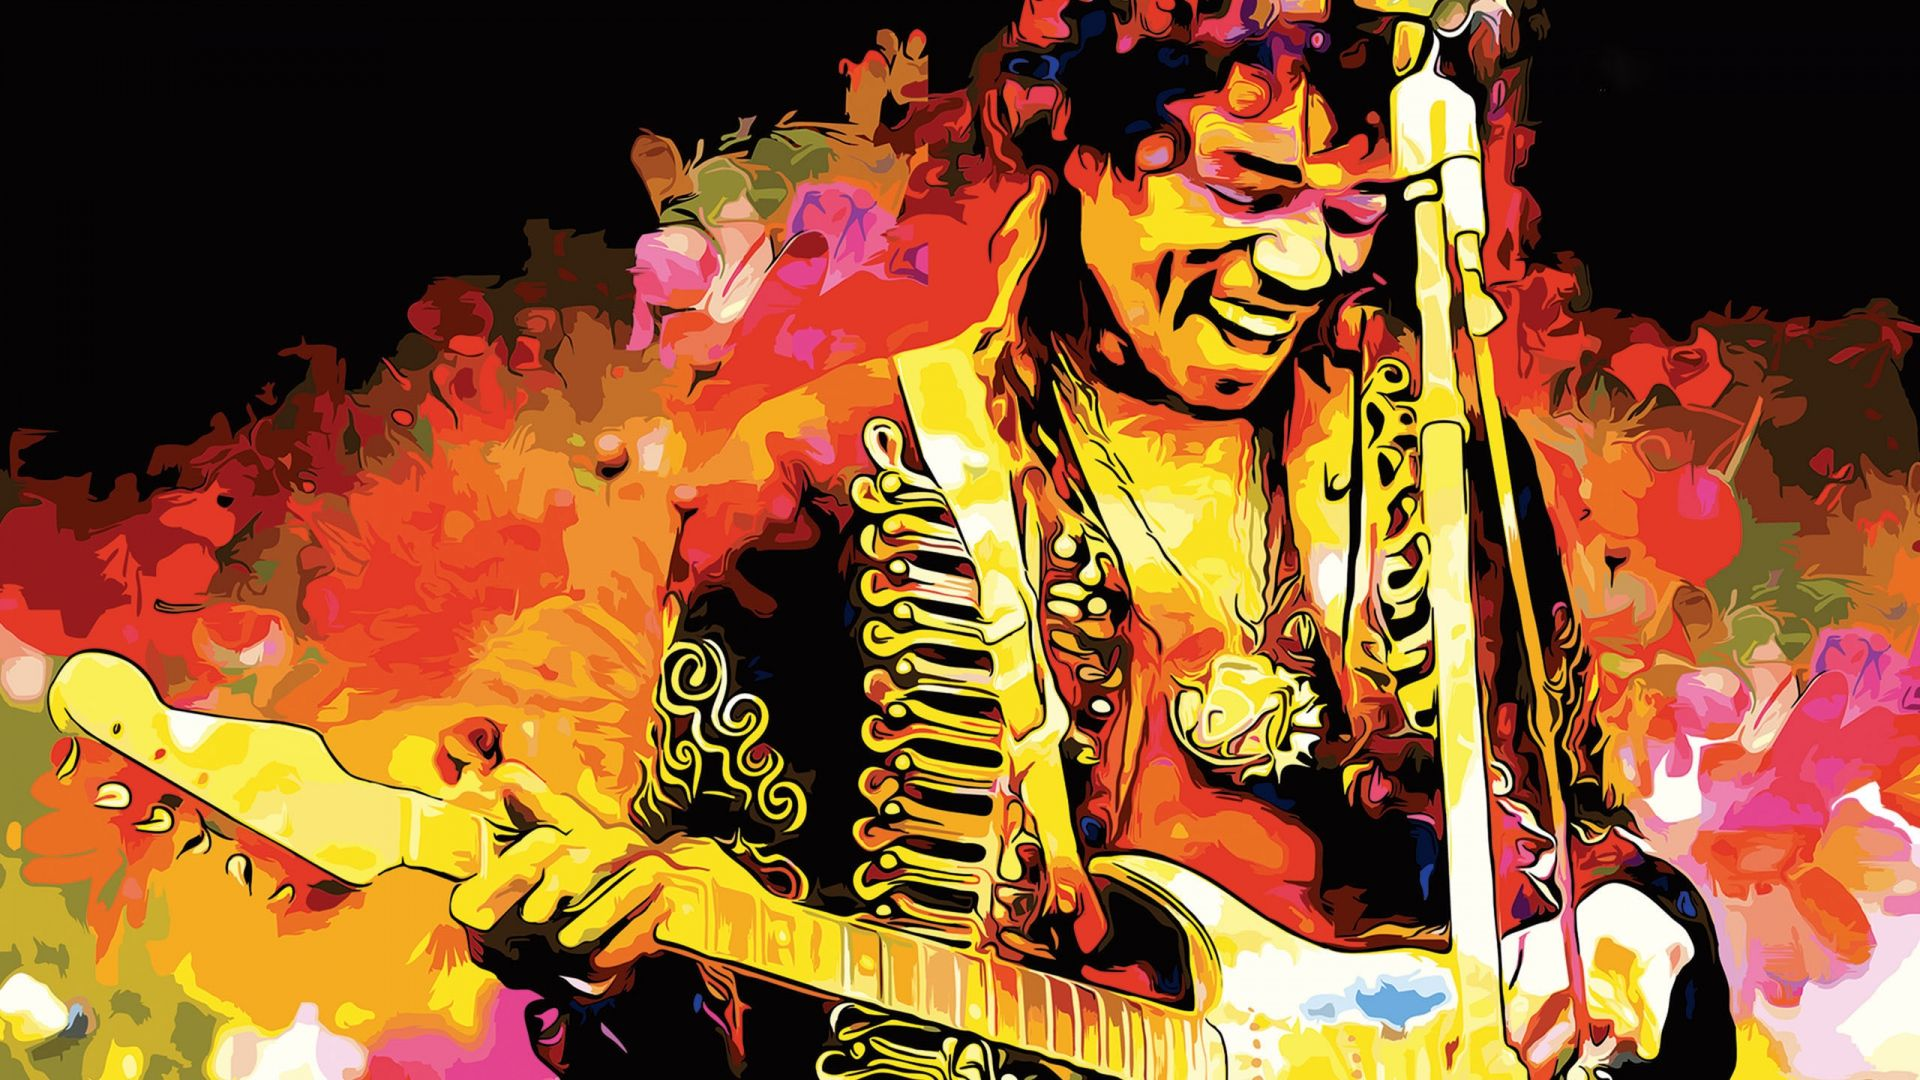 1920x1080 Wallpaper jimi hendrix, musician, guitar (With